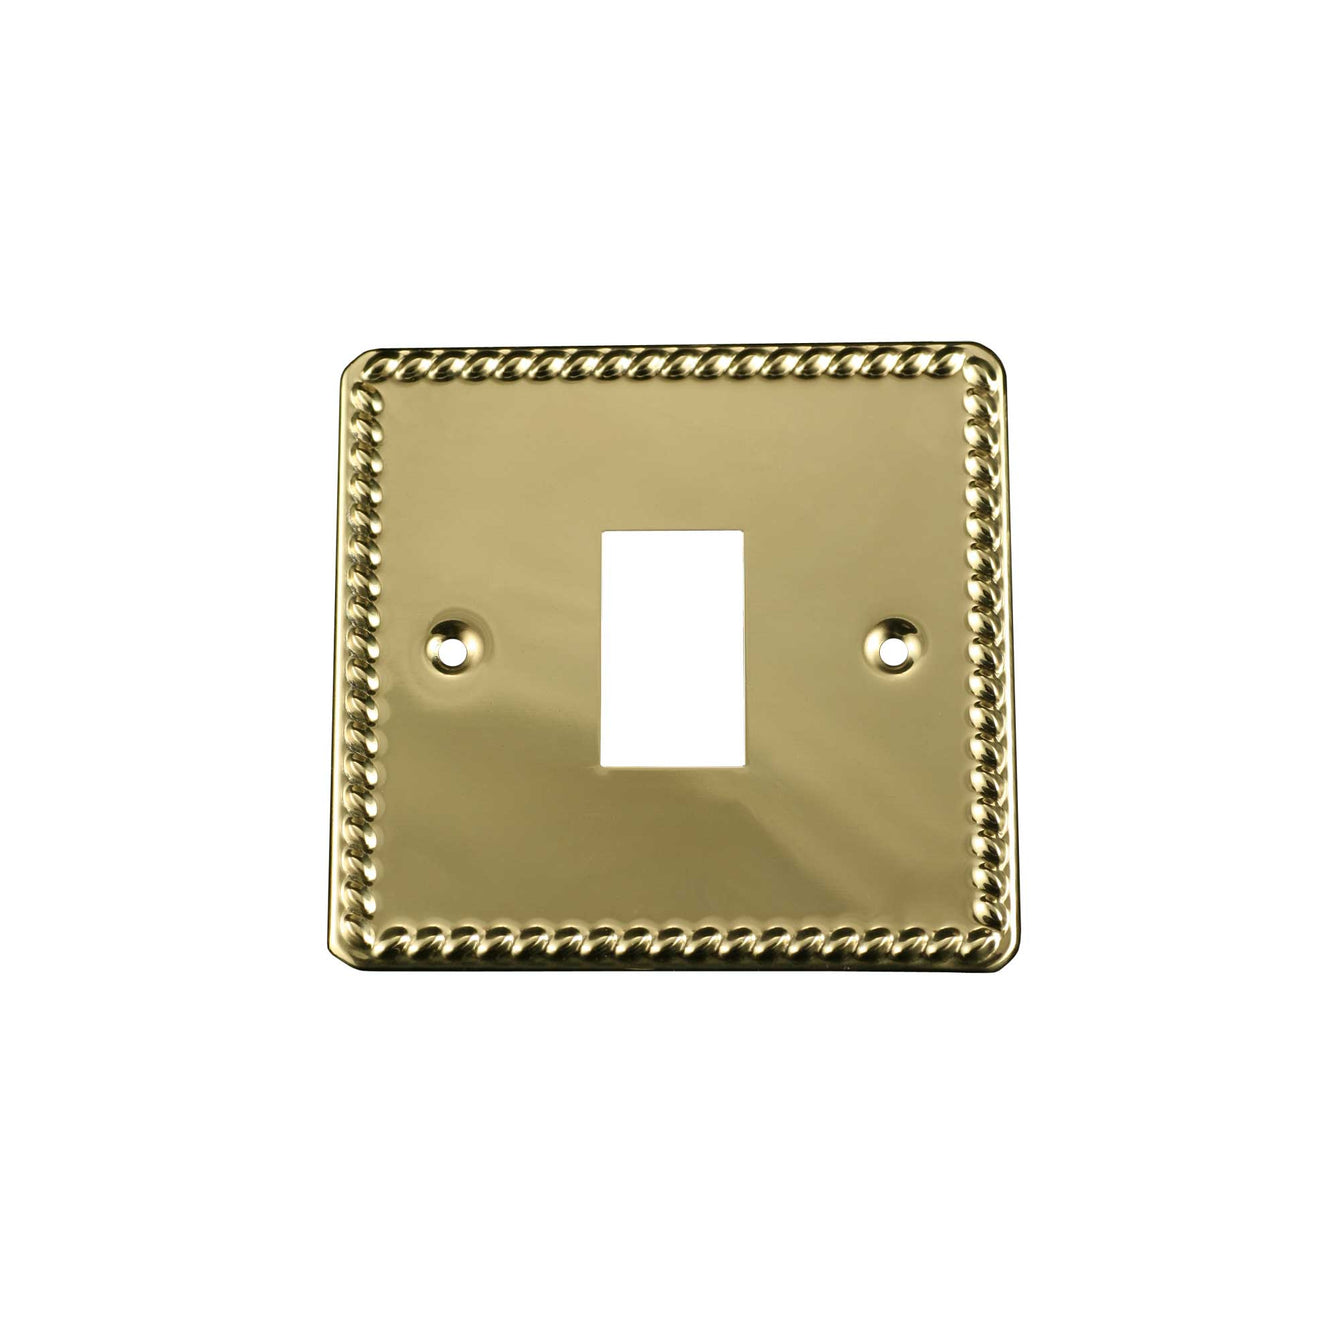 ElekTek Light Switch Conversion Cover Plate Georgian Brass Single Double Double